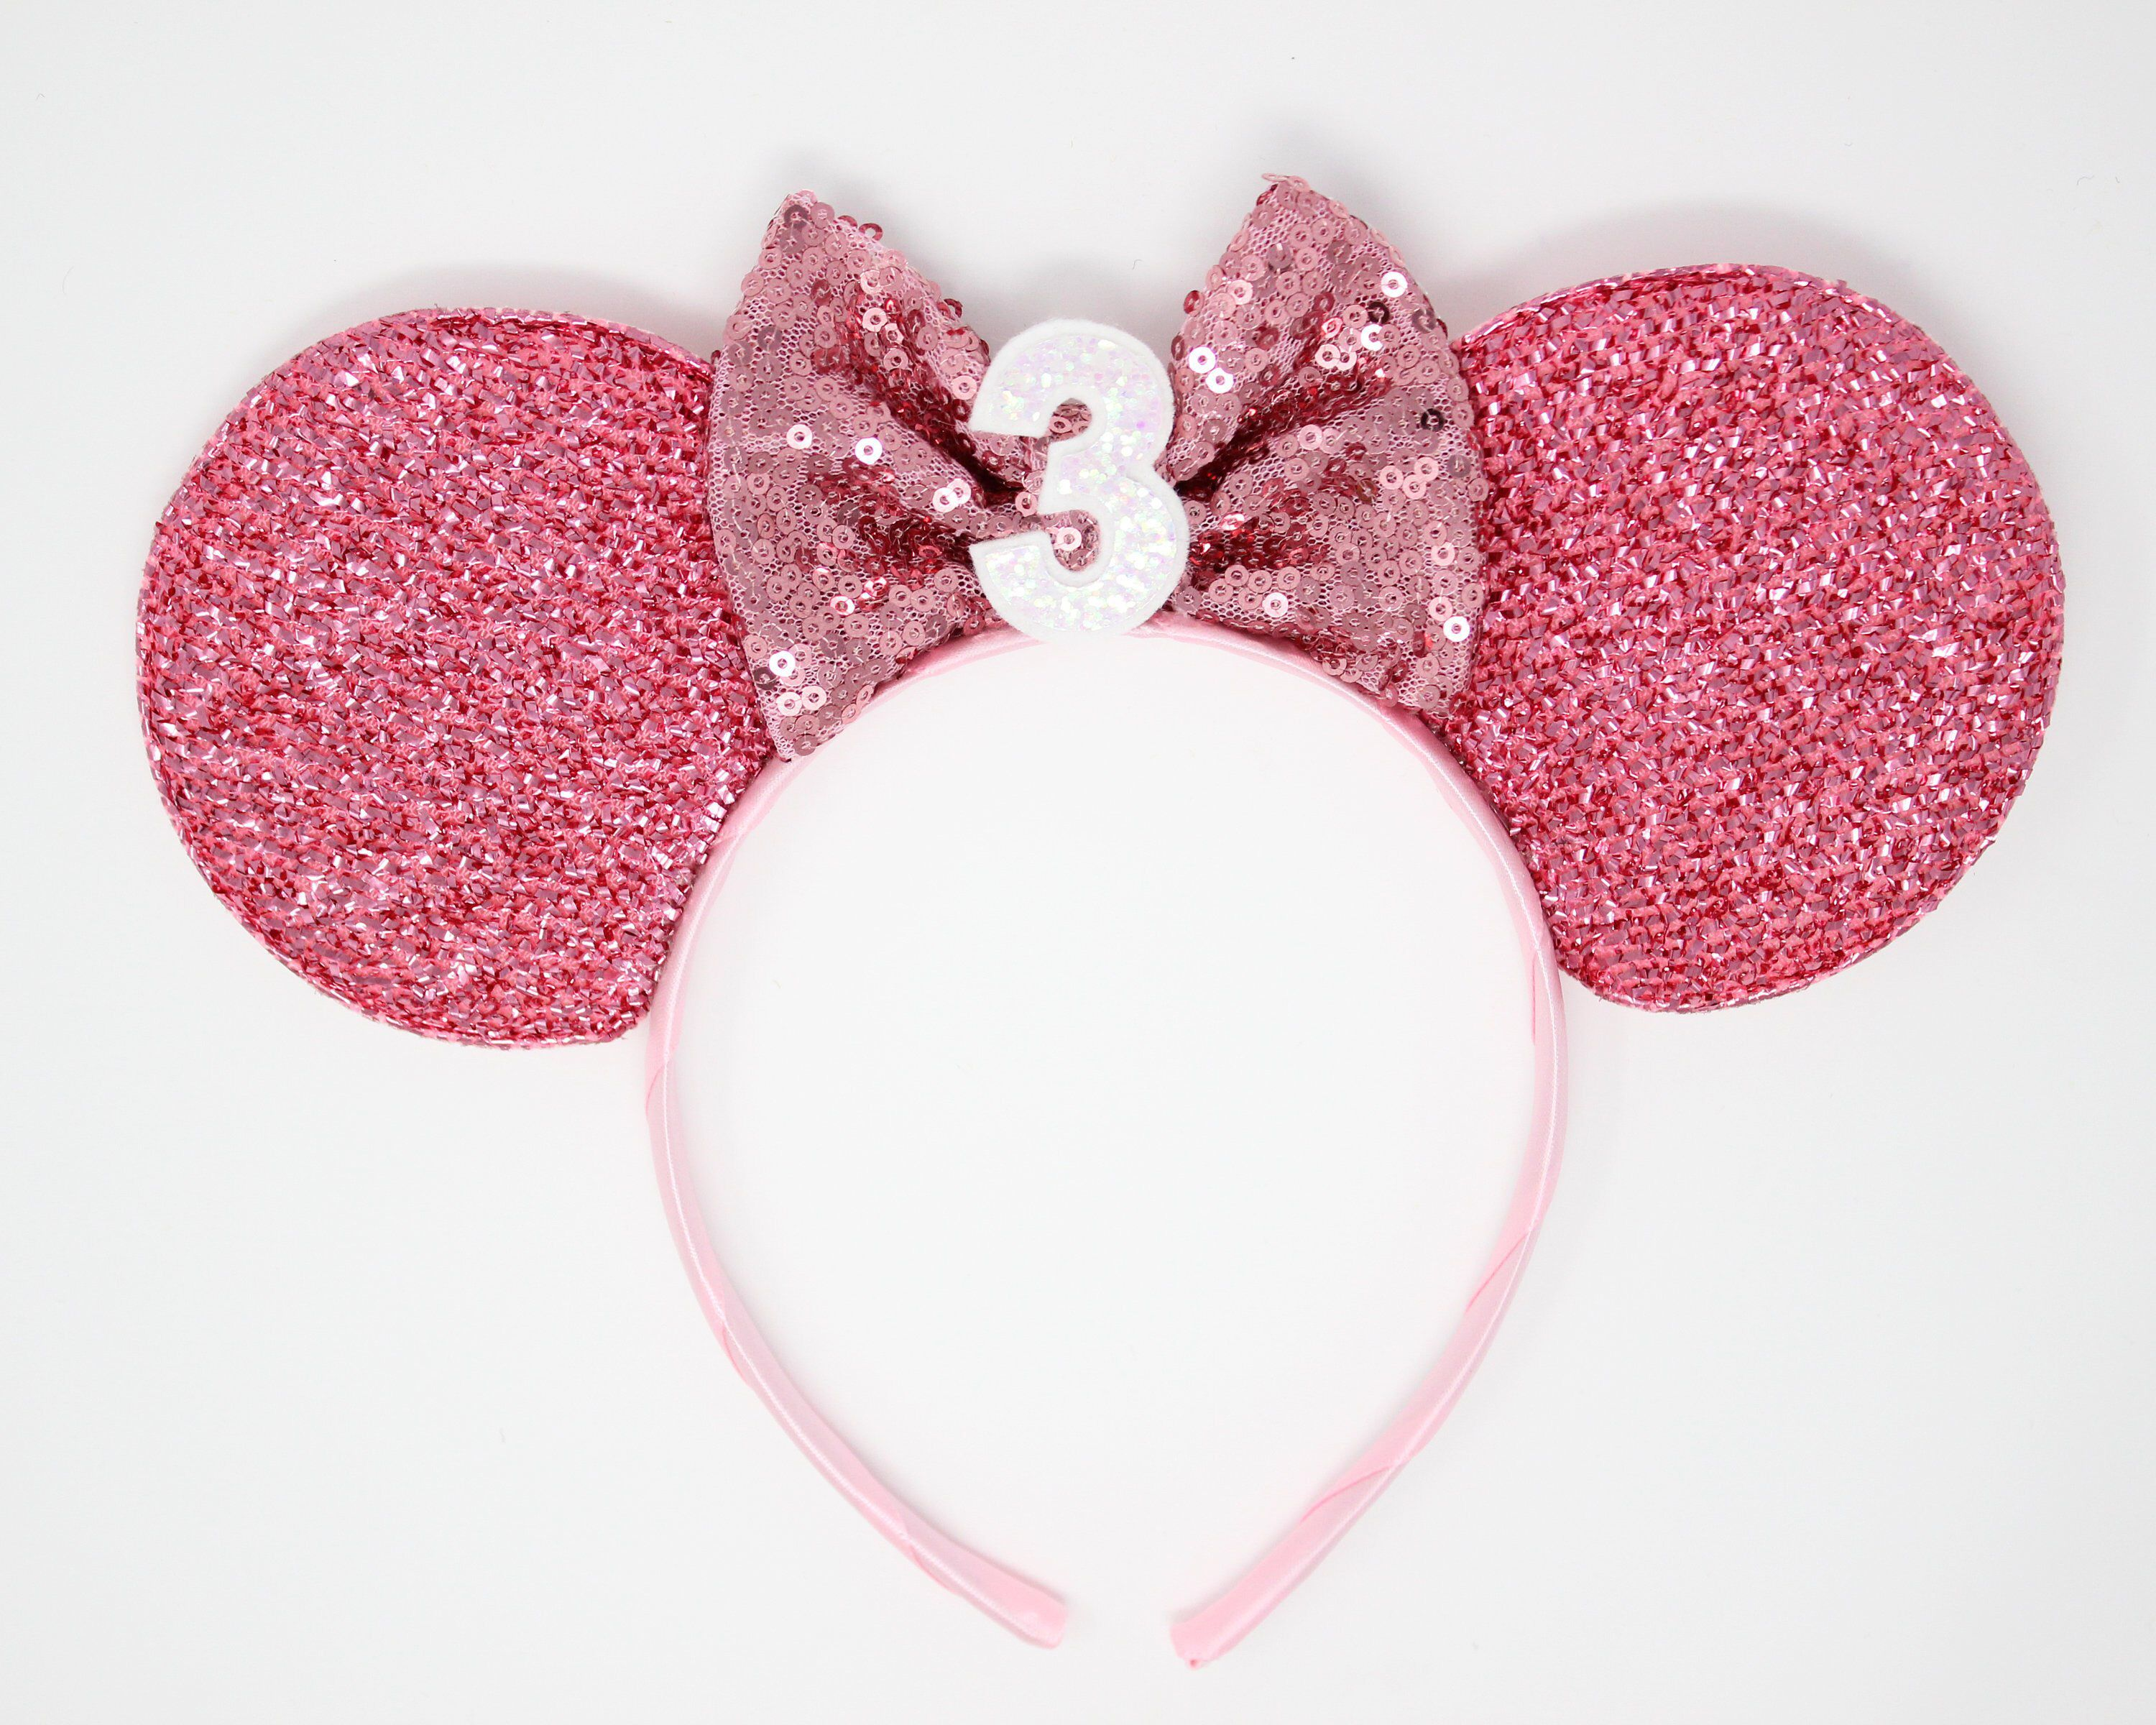 Crochet White Ears with Pink Sparkly Bow Headband Crochet Mouse Ears Headband Crochet Mouse Ears Headband with Bow